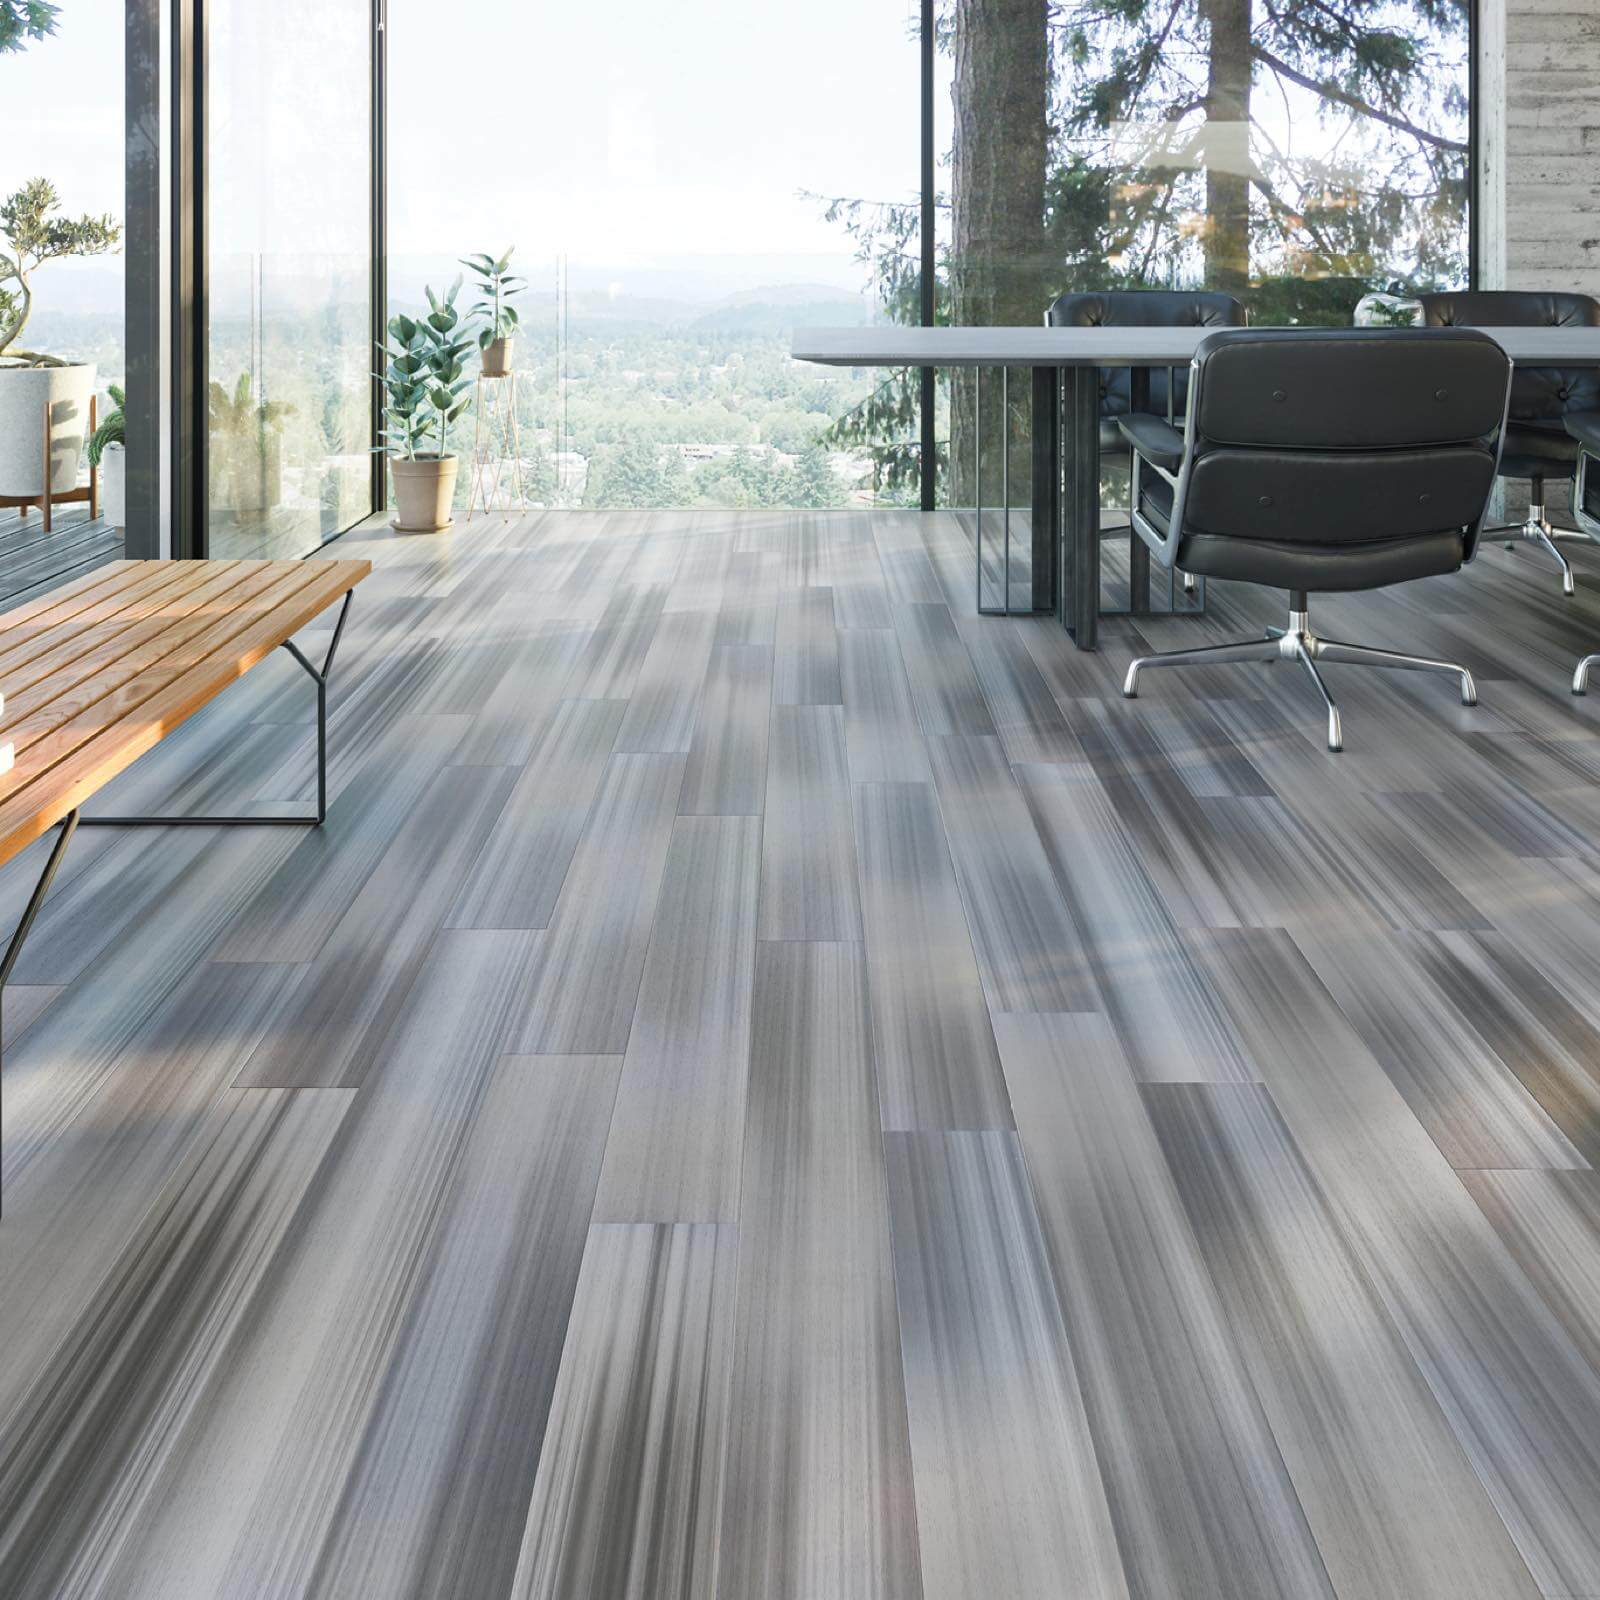 mannington commercial flooring | Independent Floor Covering